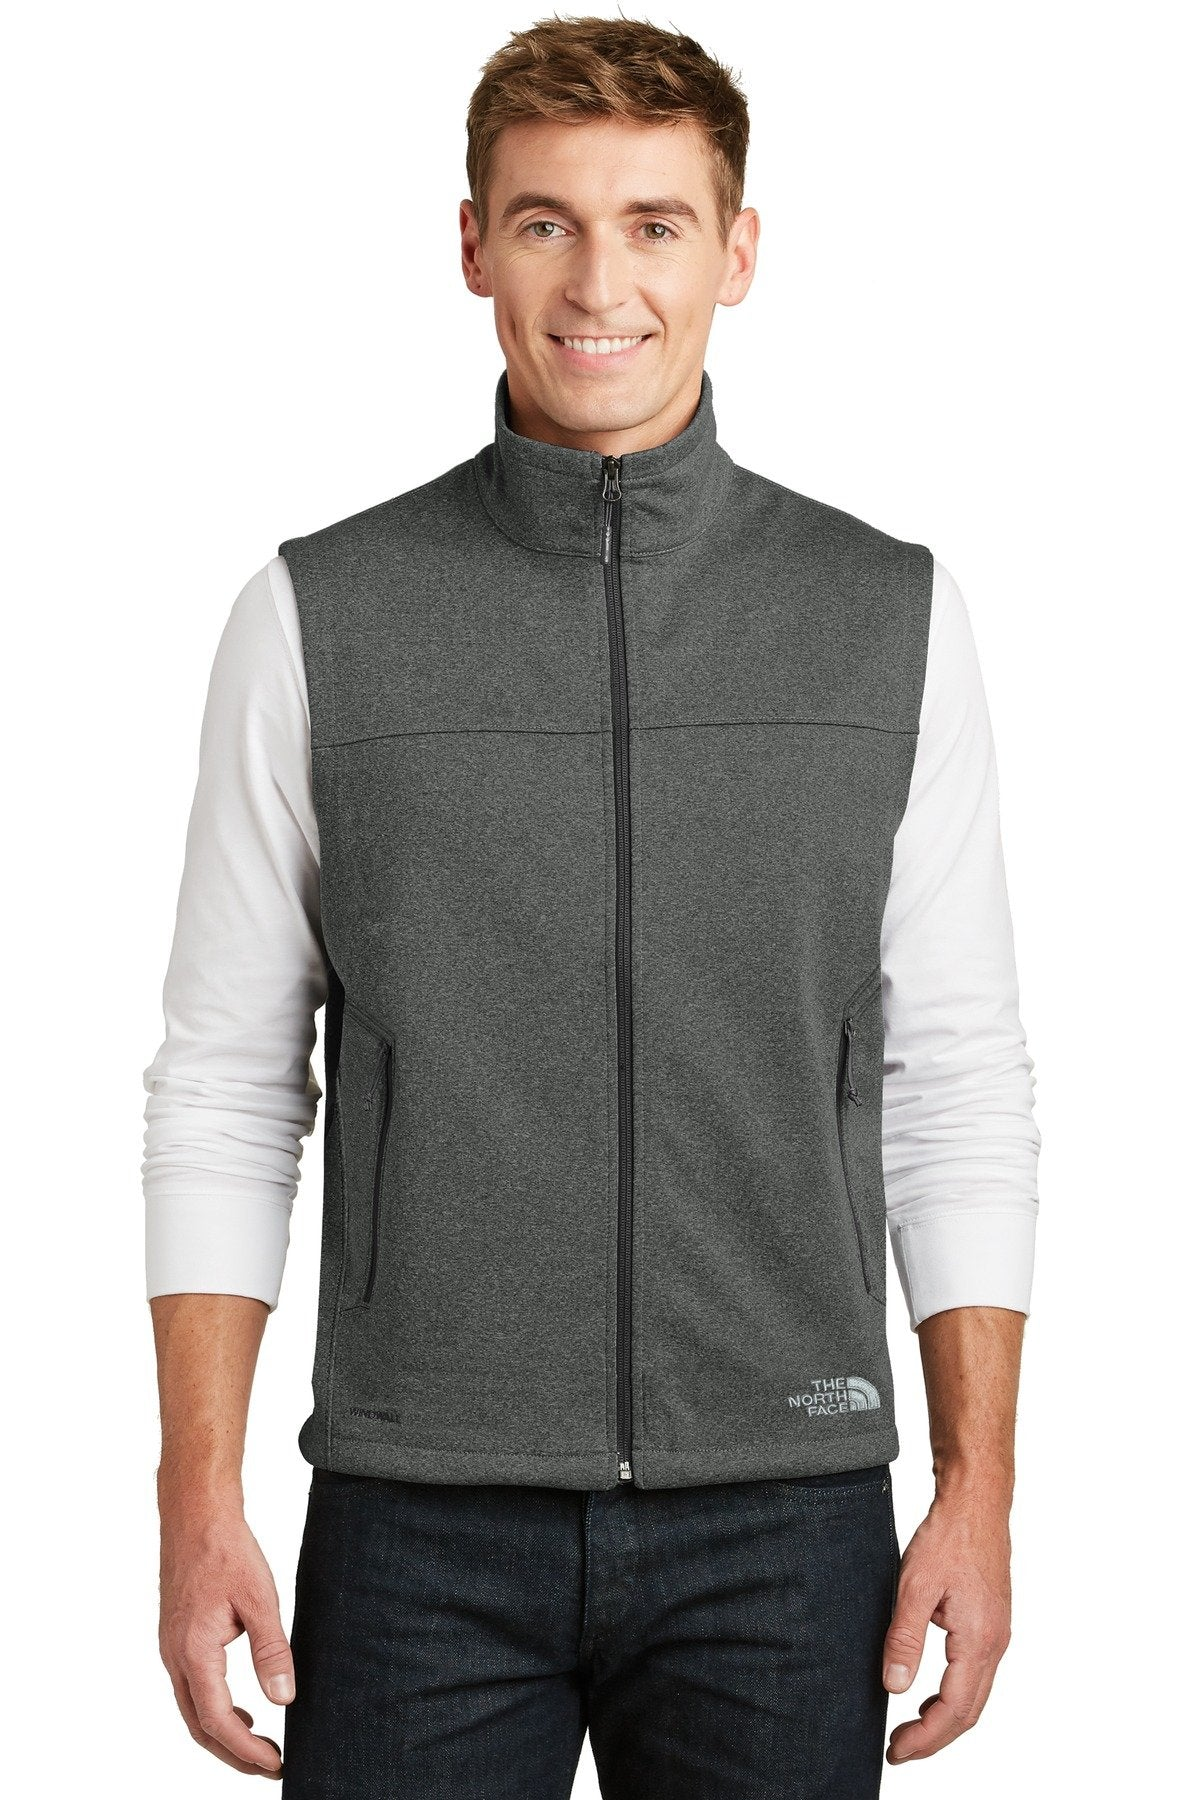 TNF Dark Grey Heather - The North Face NF0A3LGZ